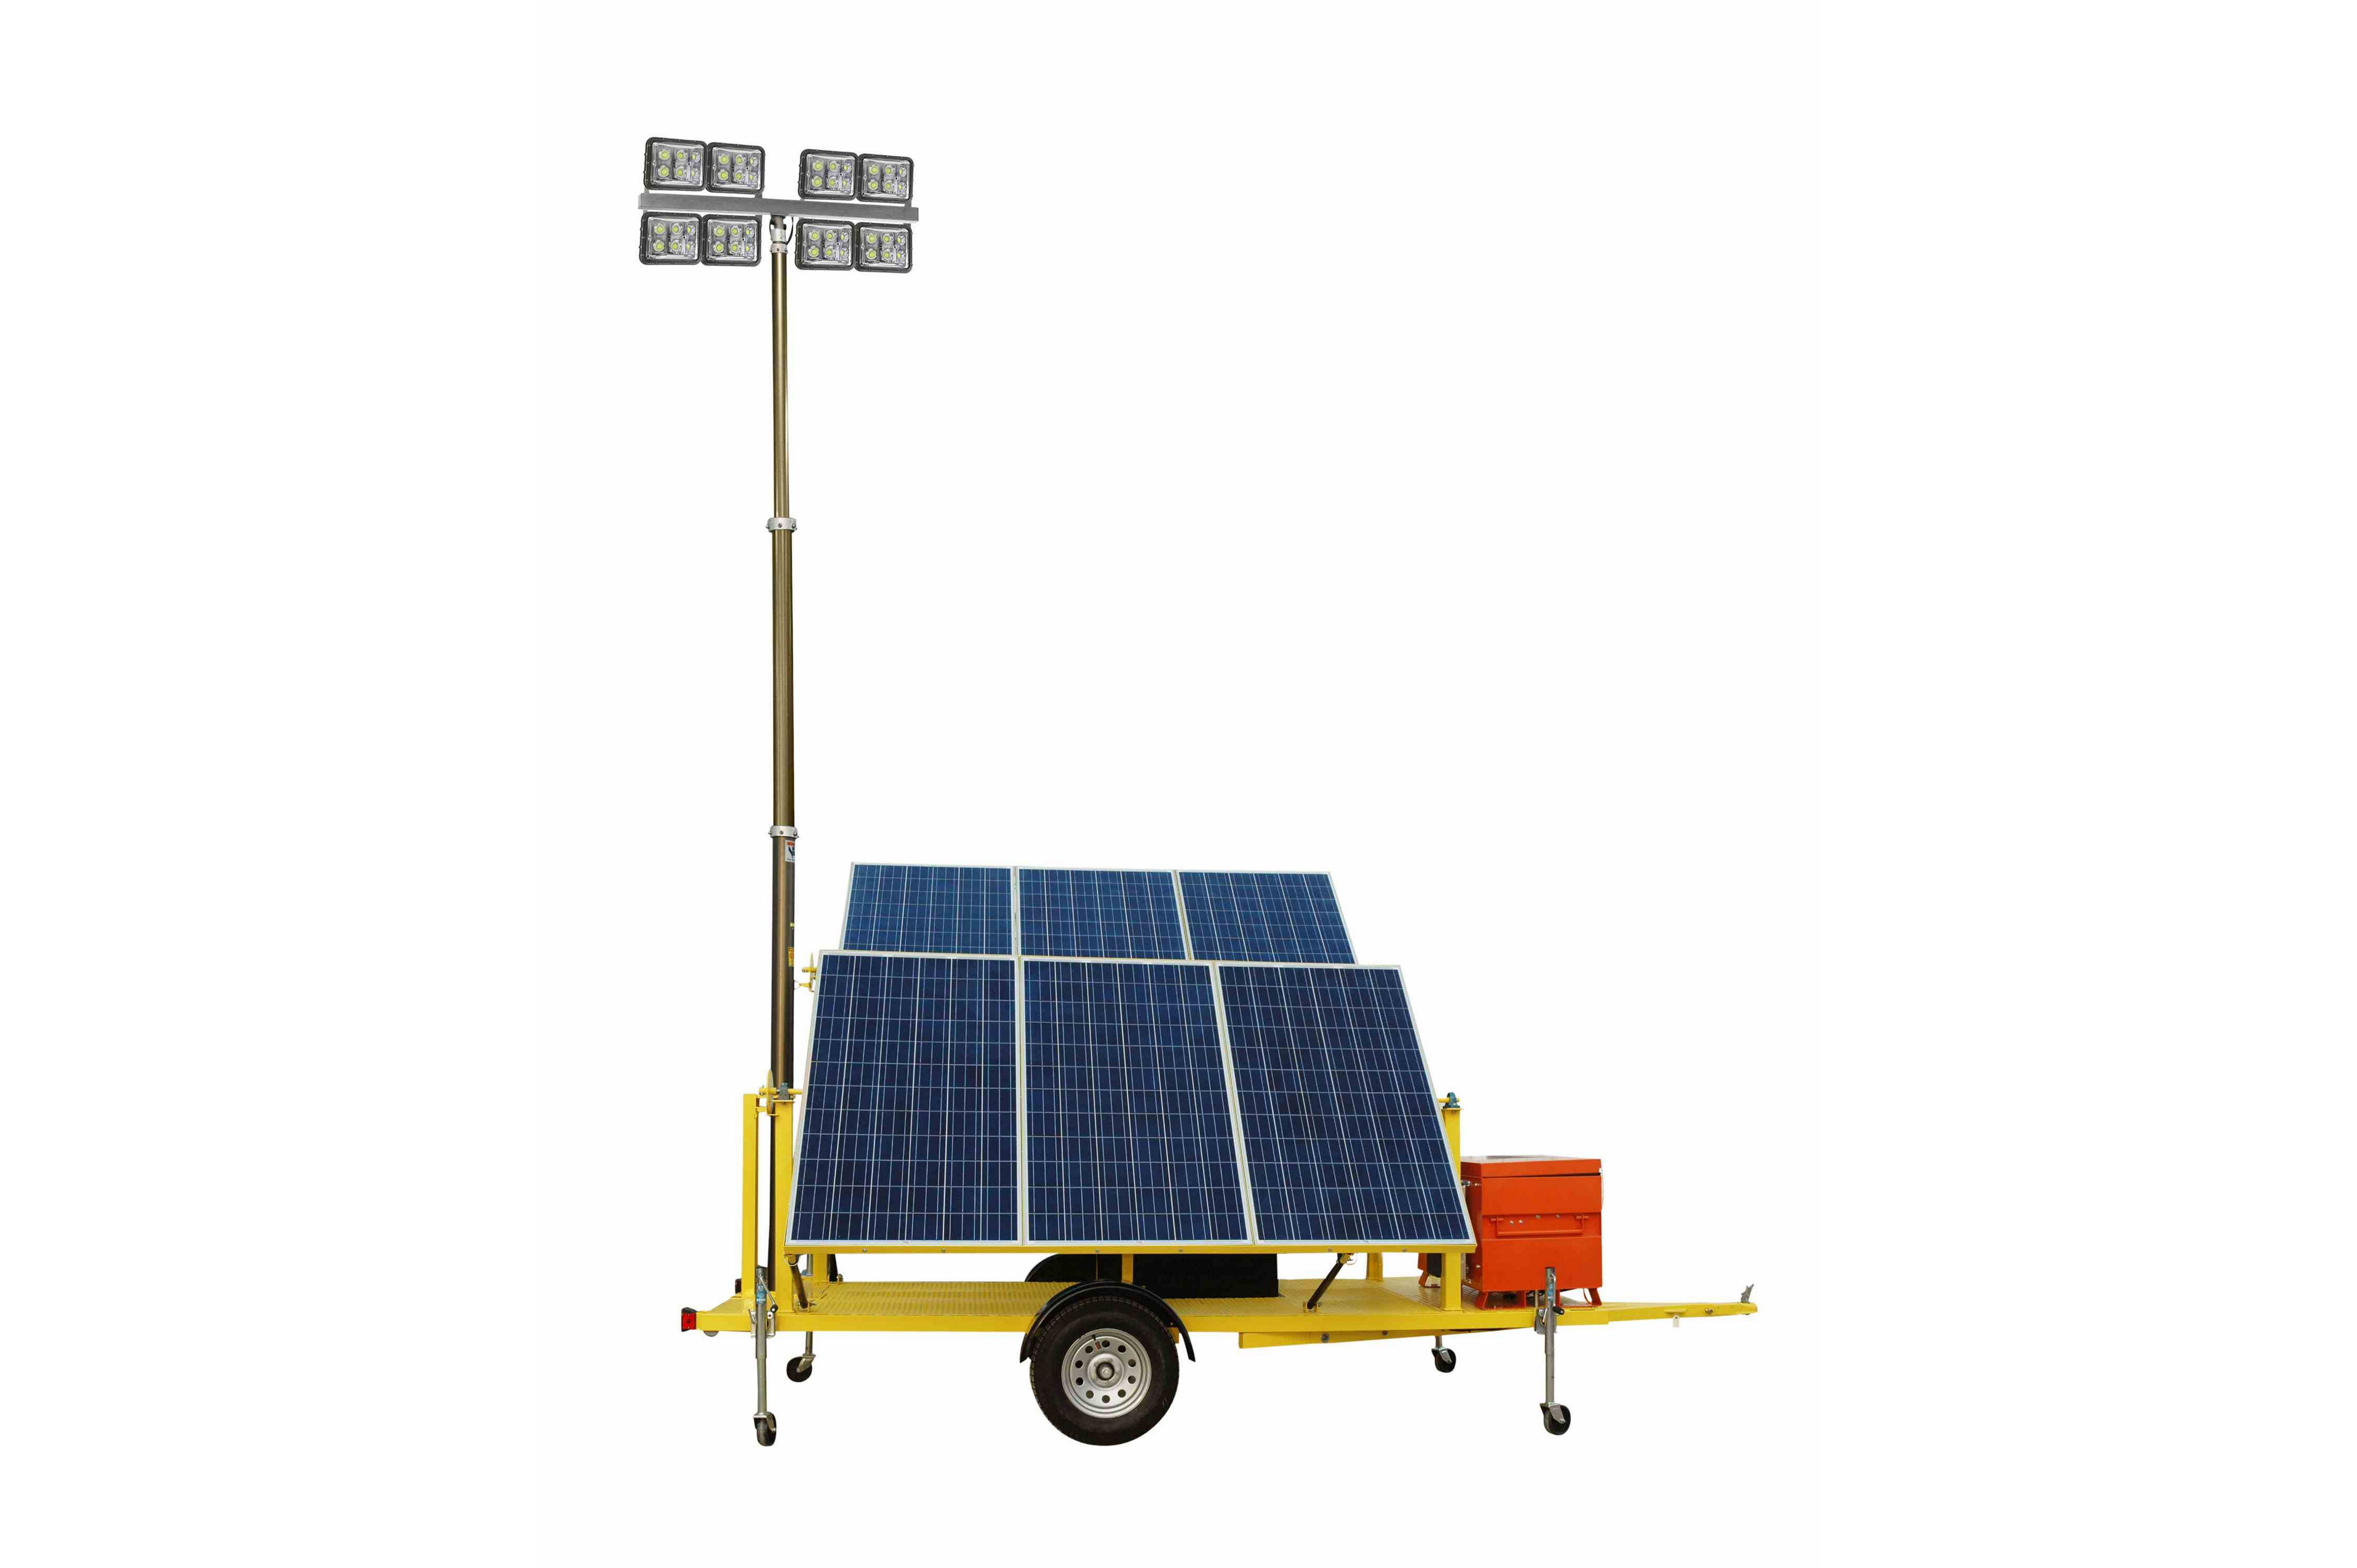 Larson Electronics Releases A 1 5KW Solar Powered Light